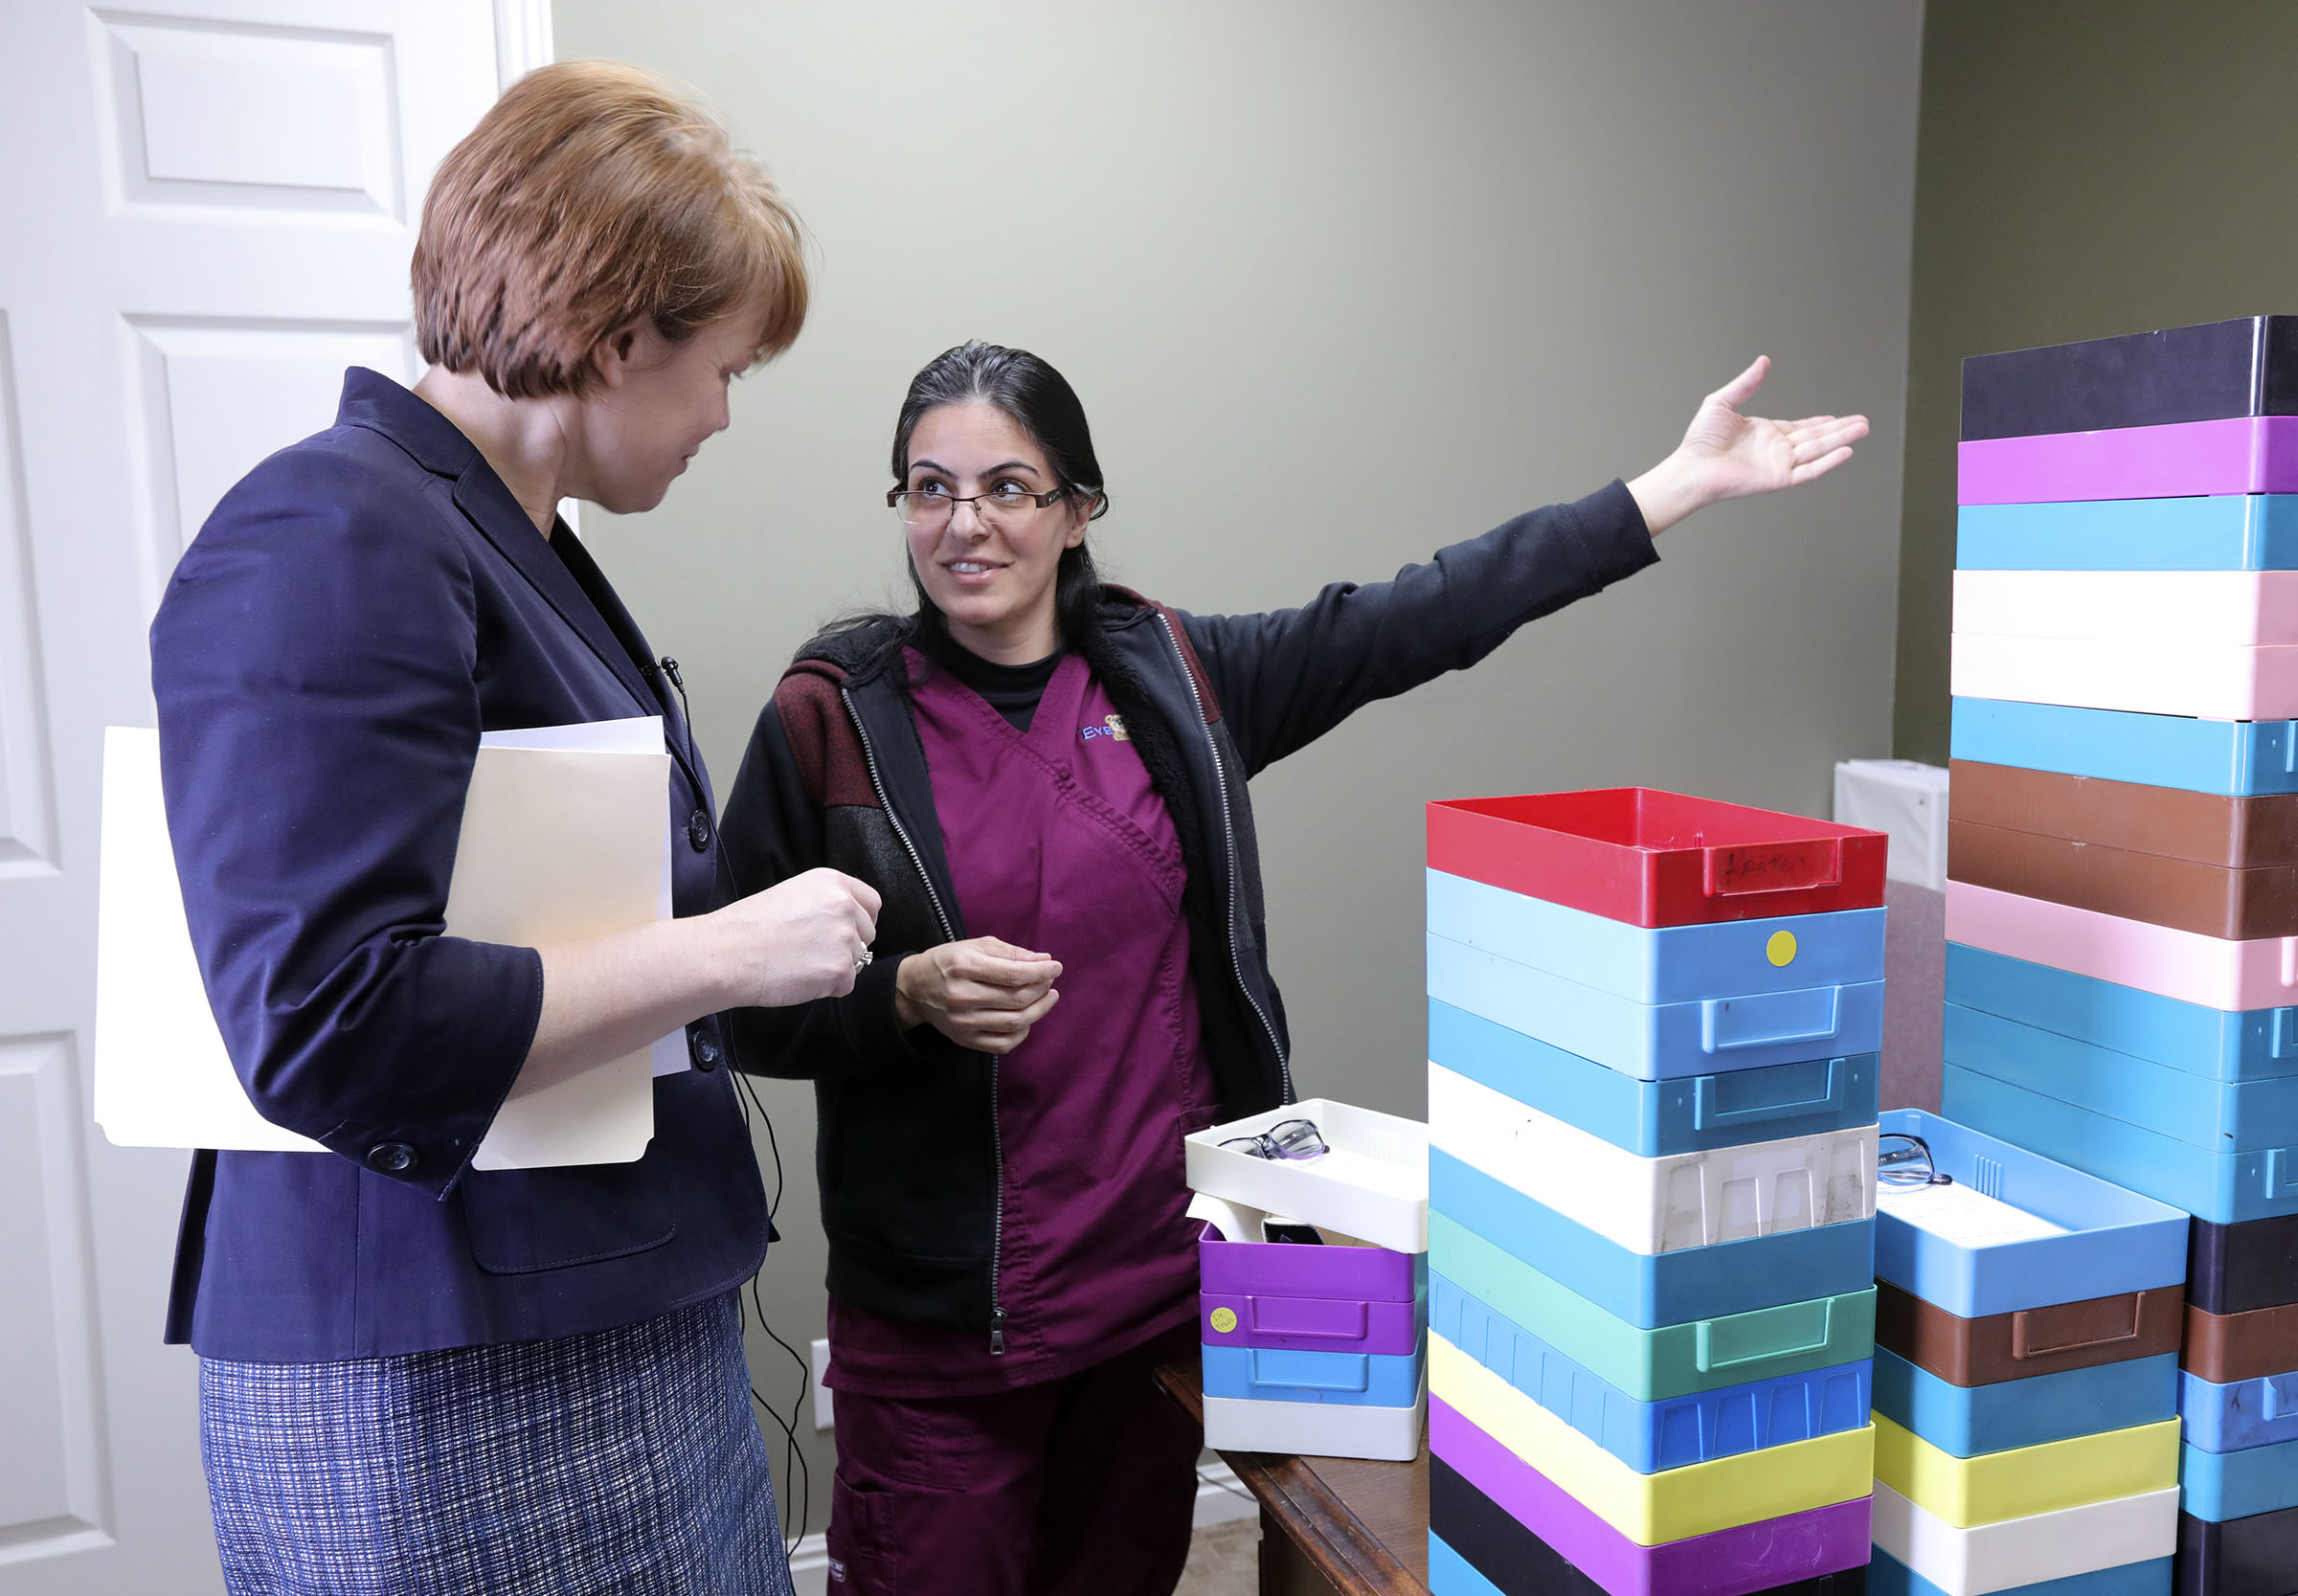 Sister Sharon Eubank, first counselor in the General Relief Society presidency of The Church of Jesus Christ of Latter-day Saints, chats with Parisa Abdoly, Eye Care 4 Kids lab technician, at Eye Care 4 Kids in Midvale, Utah, on Thursday, Feb. 7, 2019. The Church of Jesus Christ of Latter-day Saints 2018 Light the World campaign raised more than $93,000 for Eye Care 4 Kids.